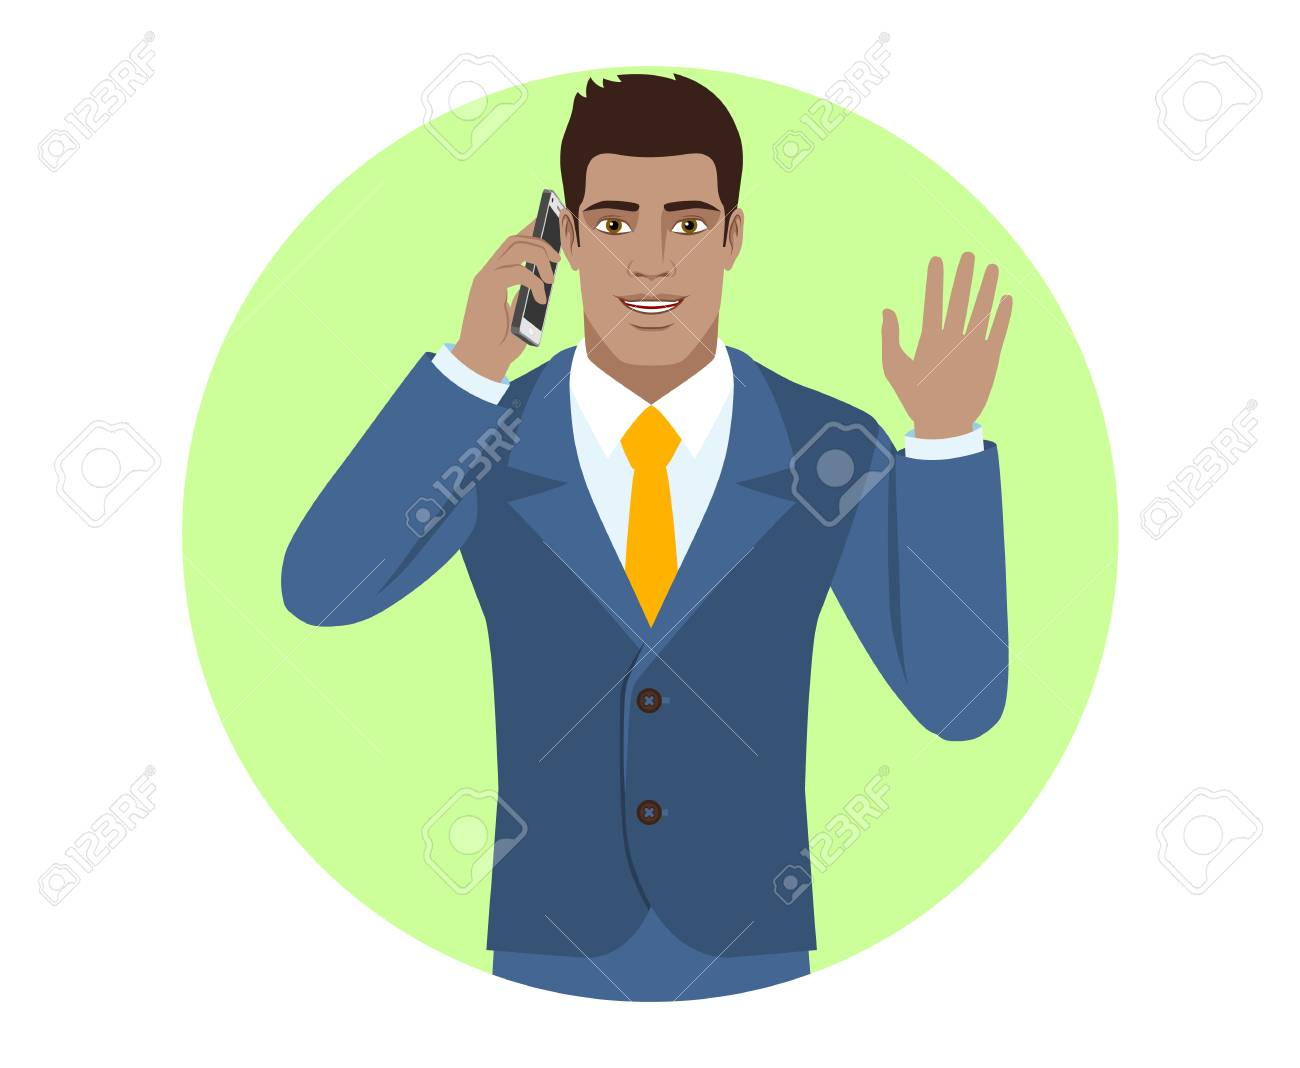 Businessman talking on the mobile phone and greeting someone businessman talking on the mobile phone and greeting someone with his hand raised up portrait m4hsunfo